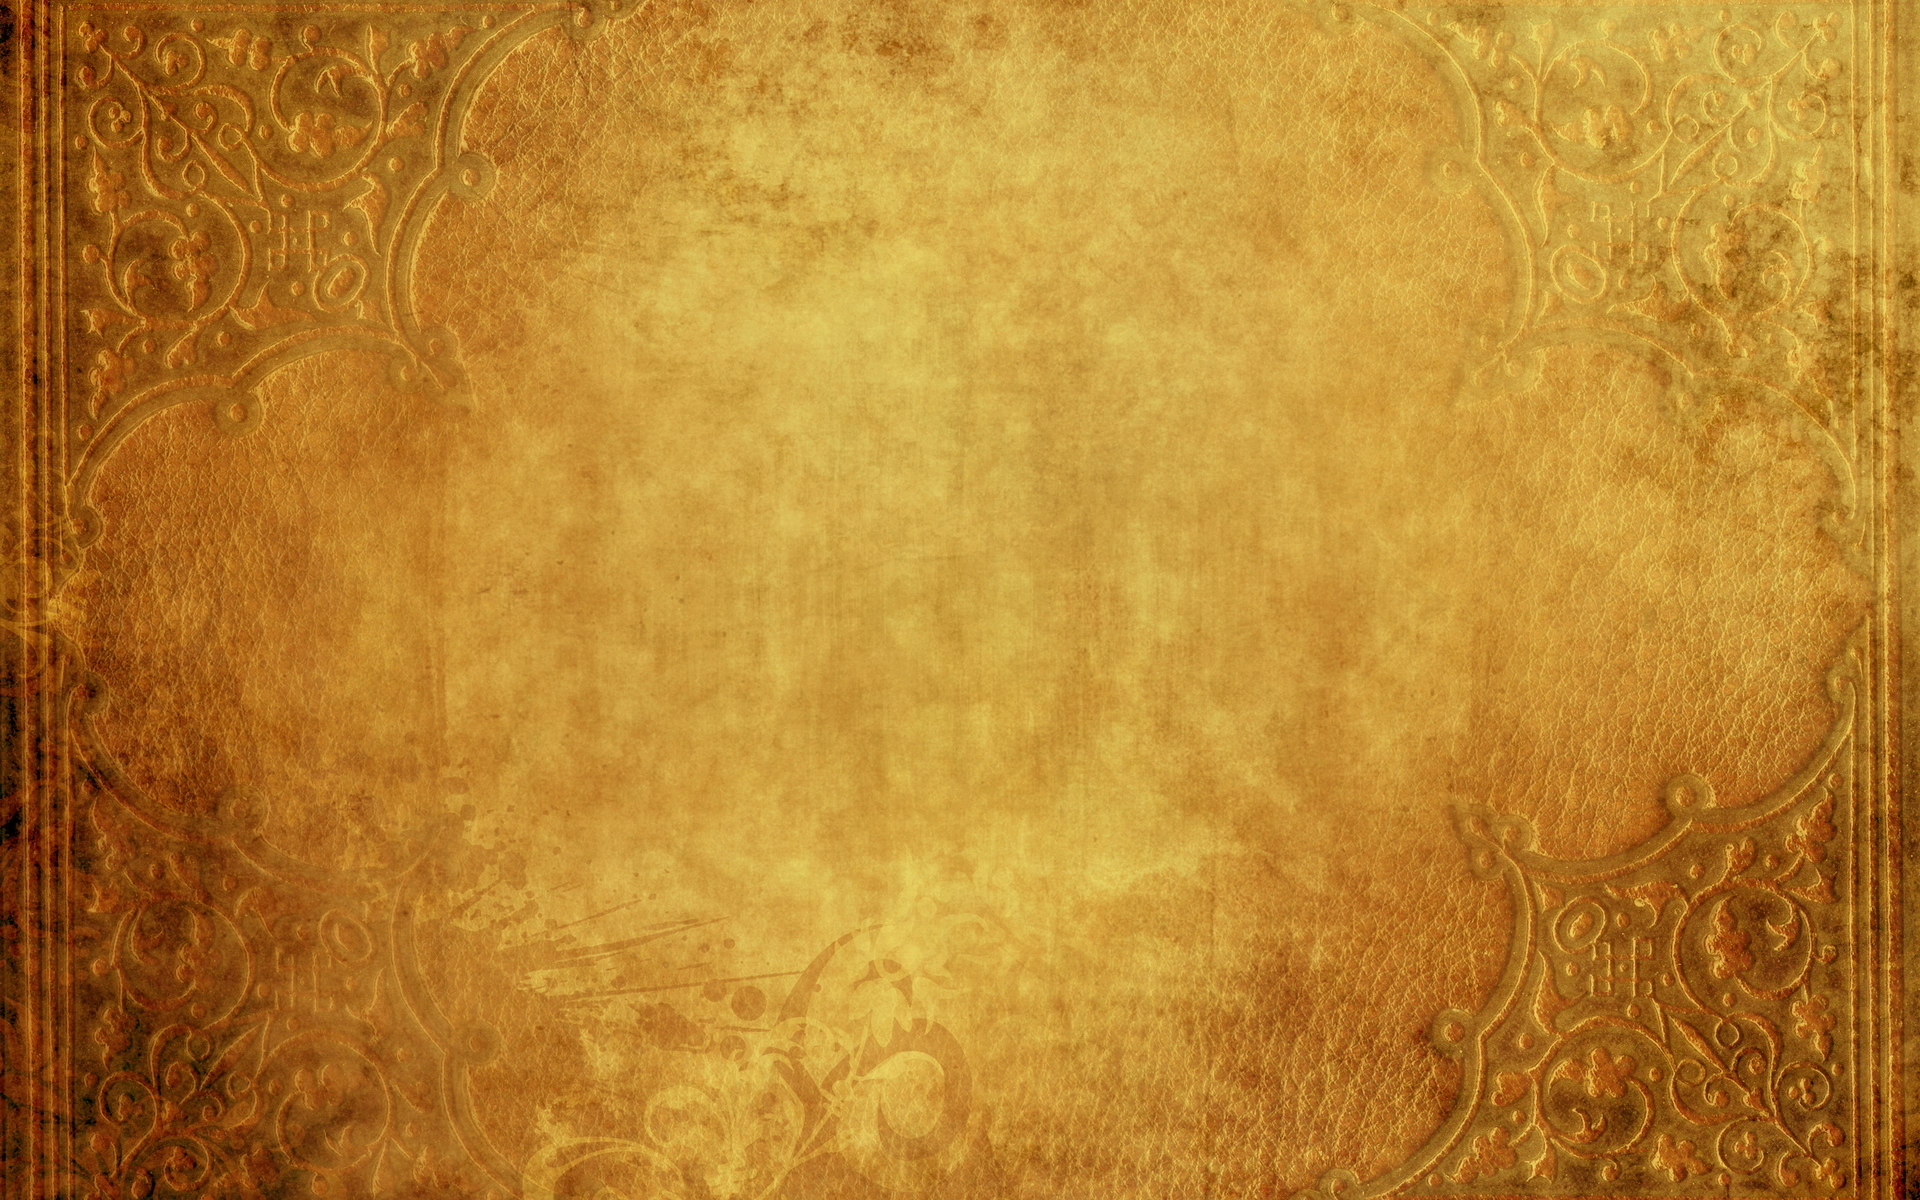 Gold Backgrounds Images The Art Mad Wallpapers 1920x1200